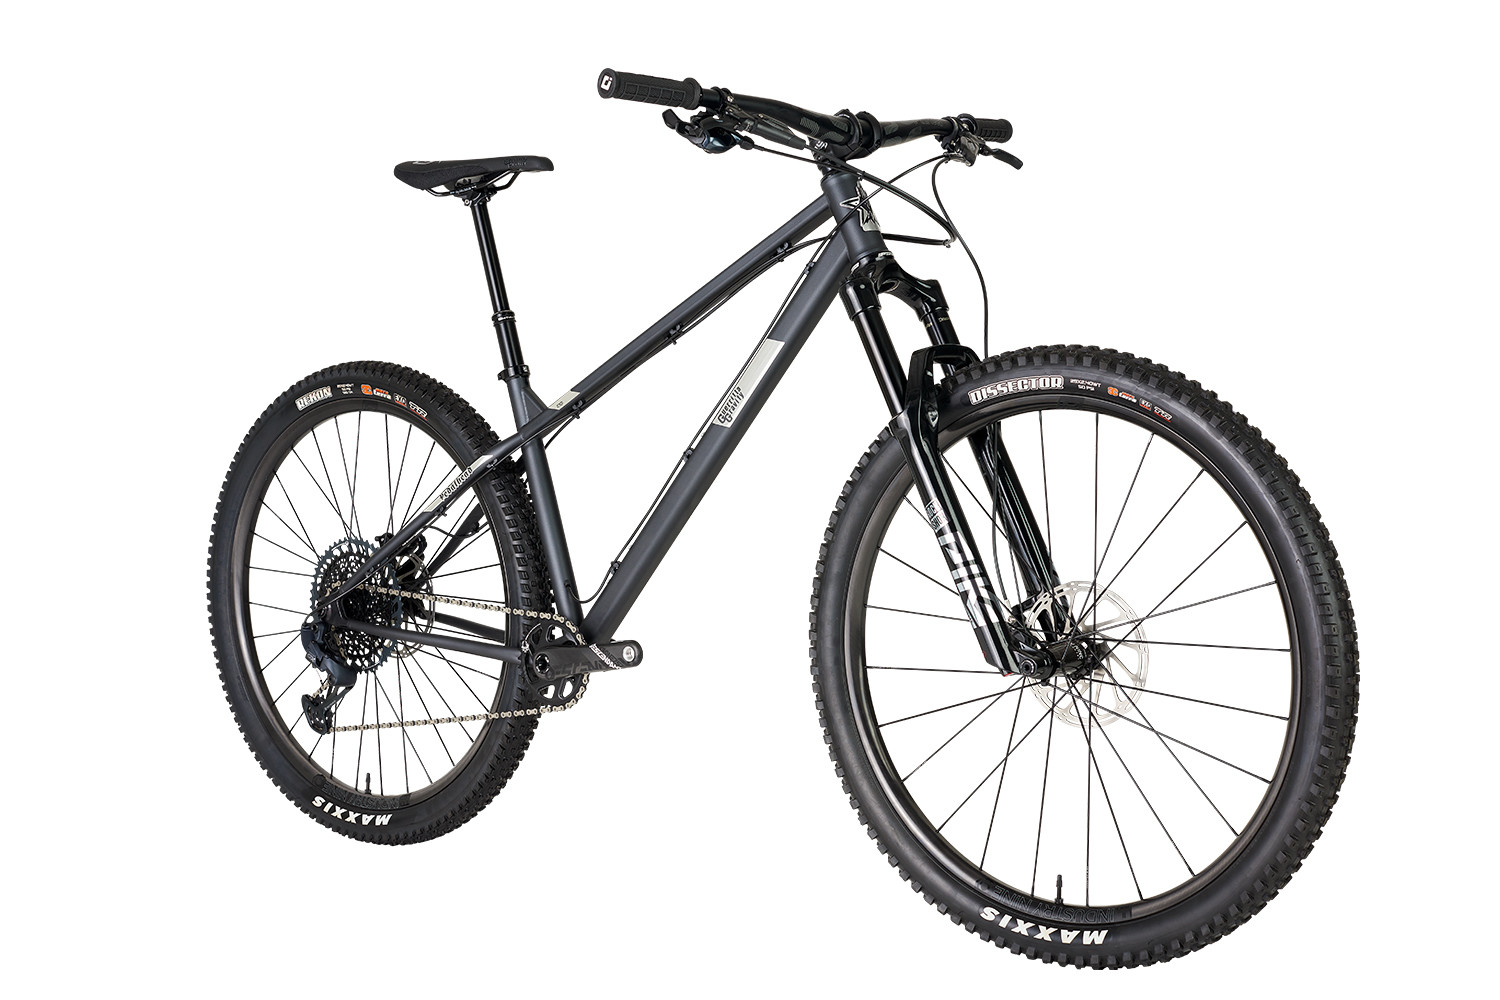 The 2021 Pedalhead has a sleek new design and novel features.